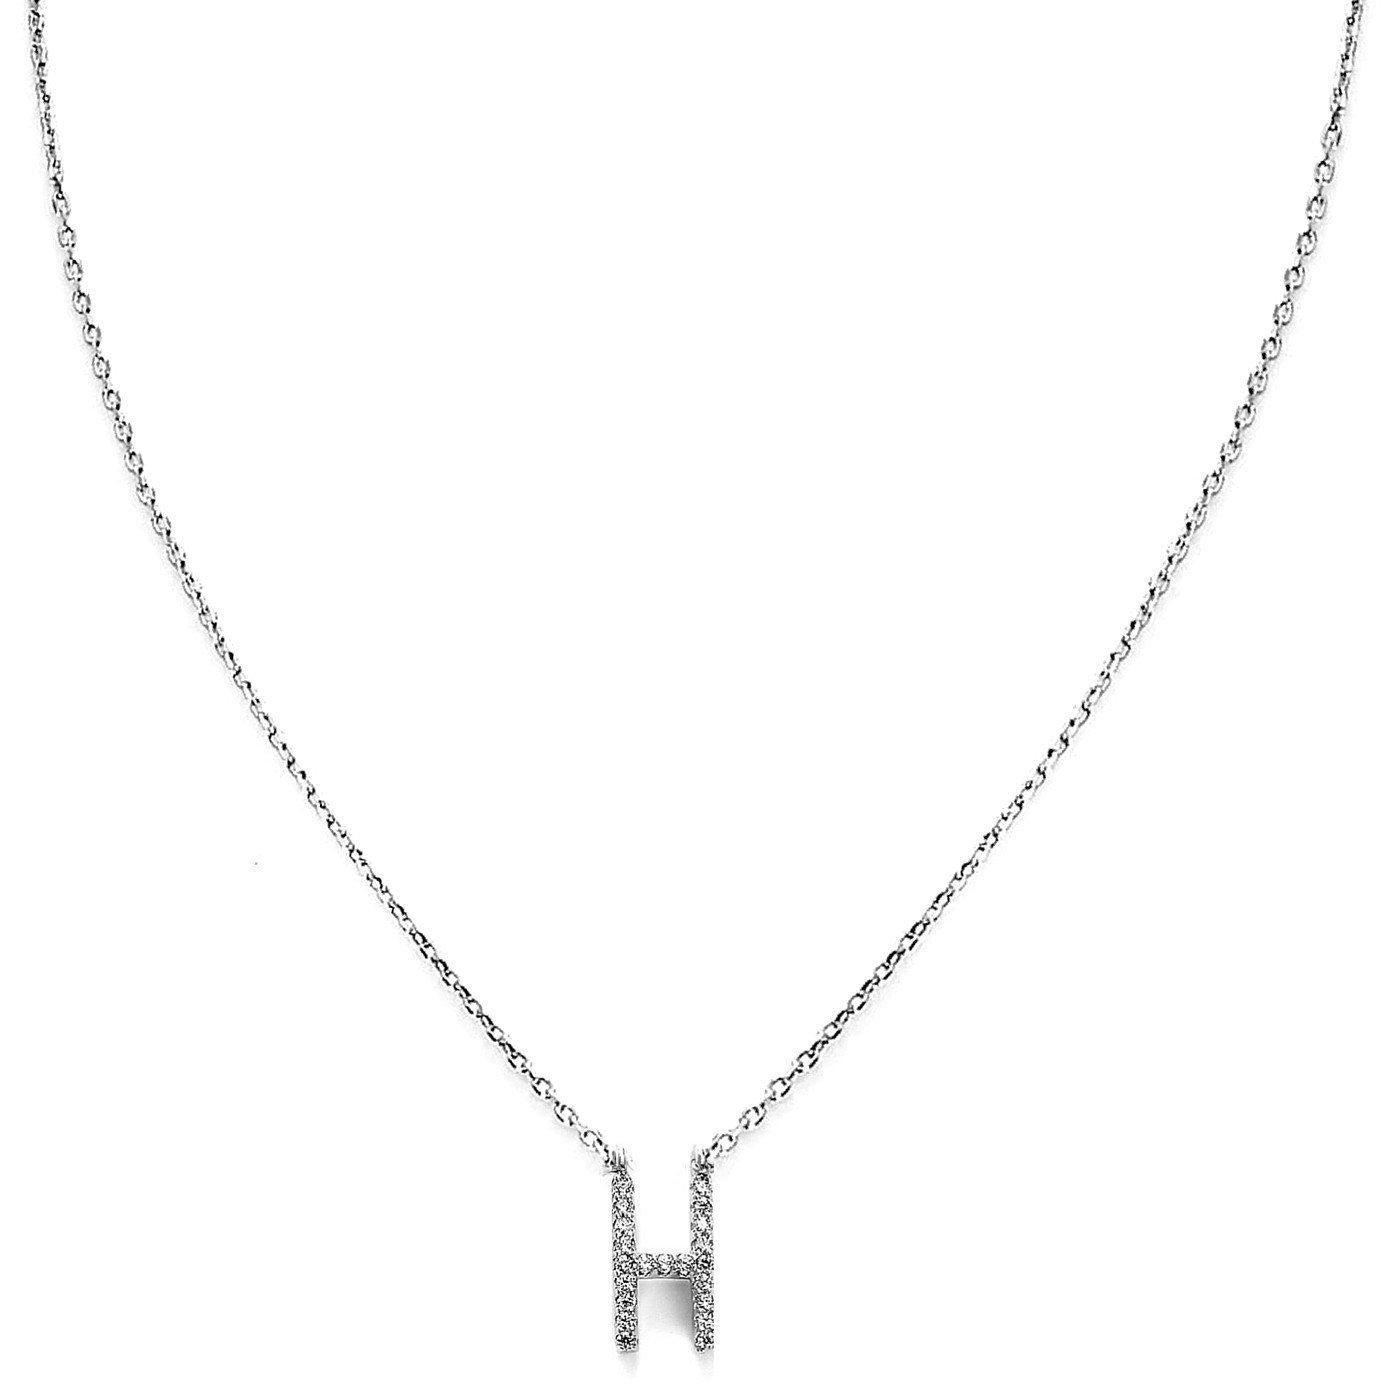 Your Initial H Necklace-Blinglane